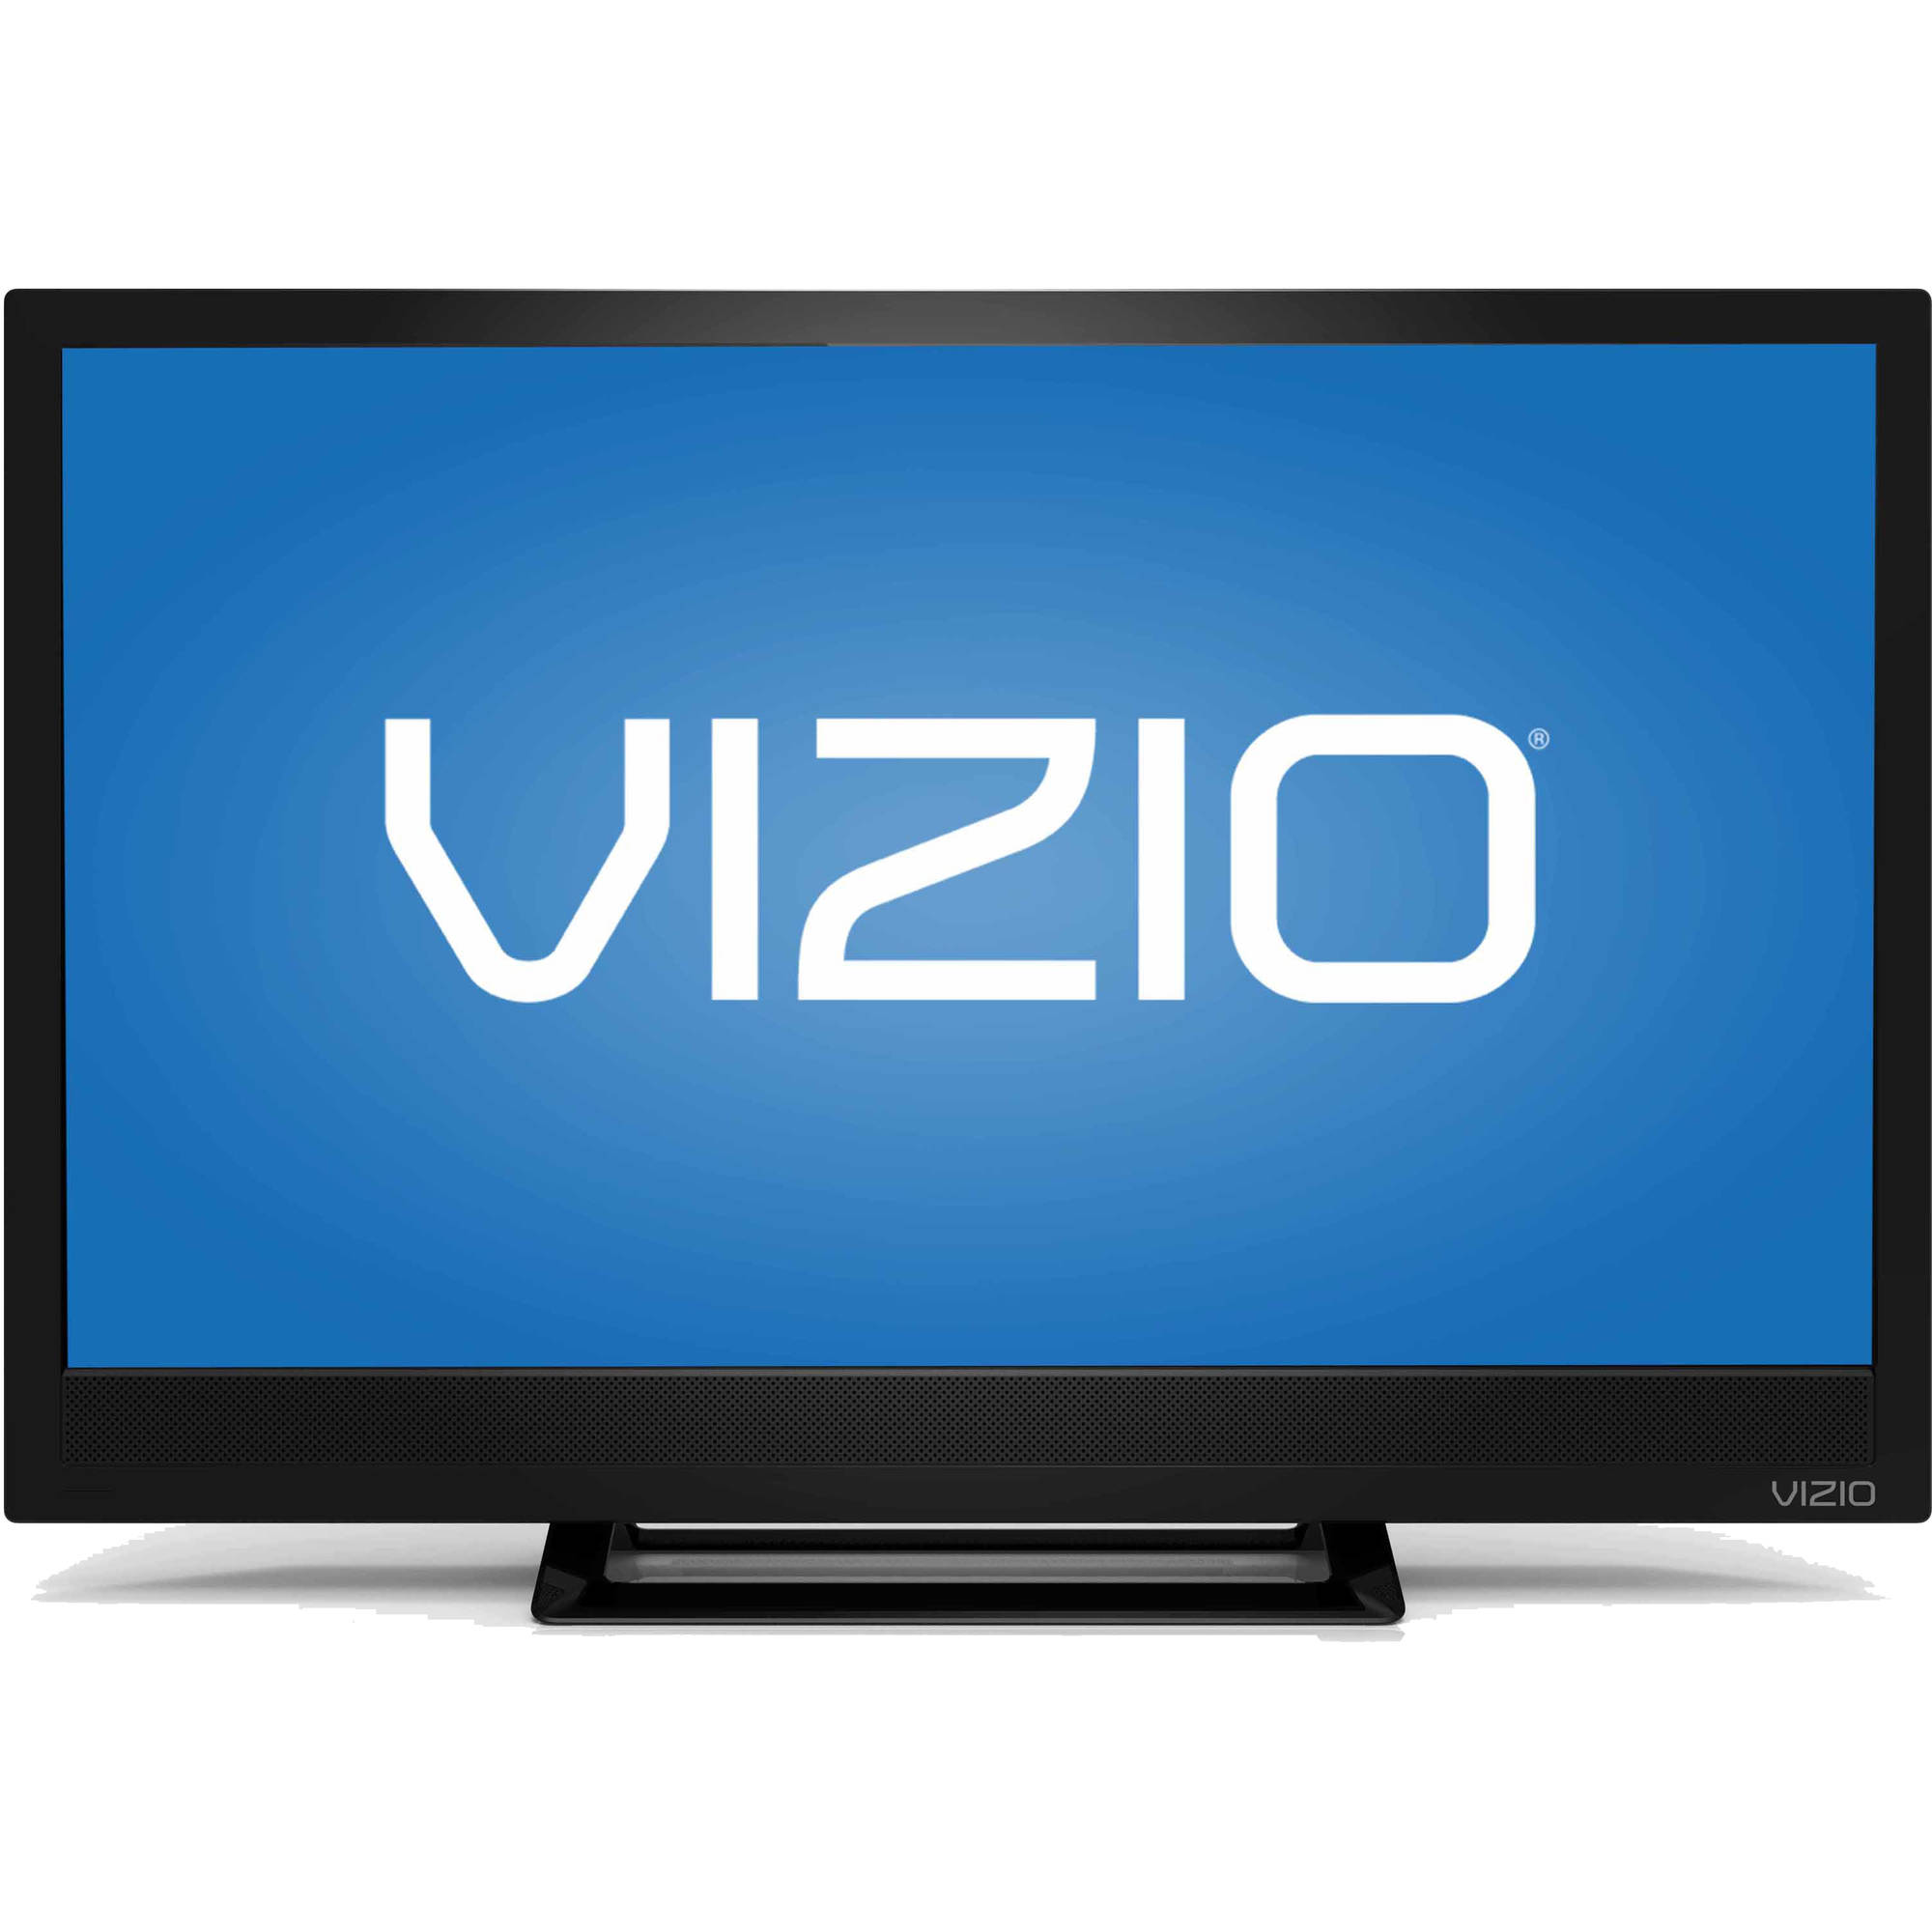 "Refurbished VIZIO D24H-C1 24"" 720p 60Hz Razor LED HDTV"